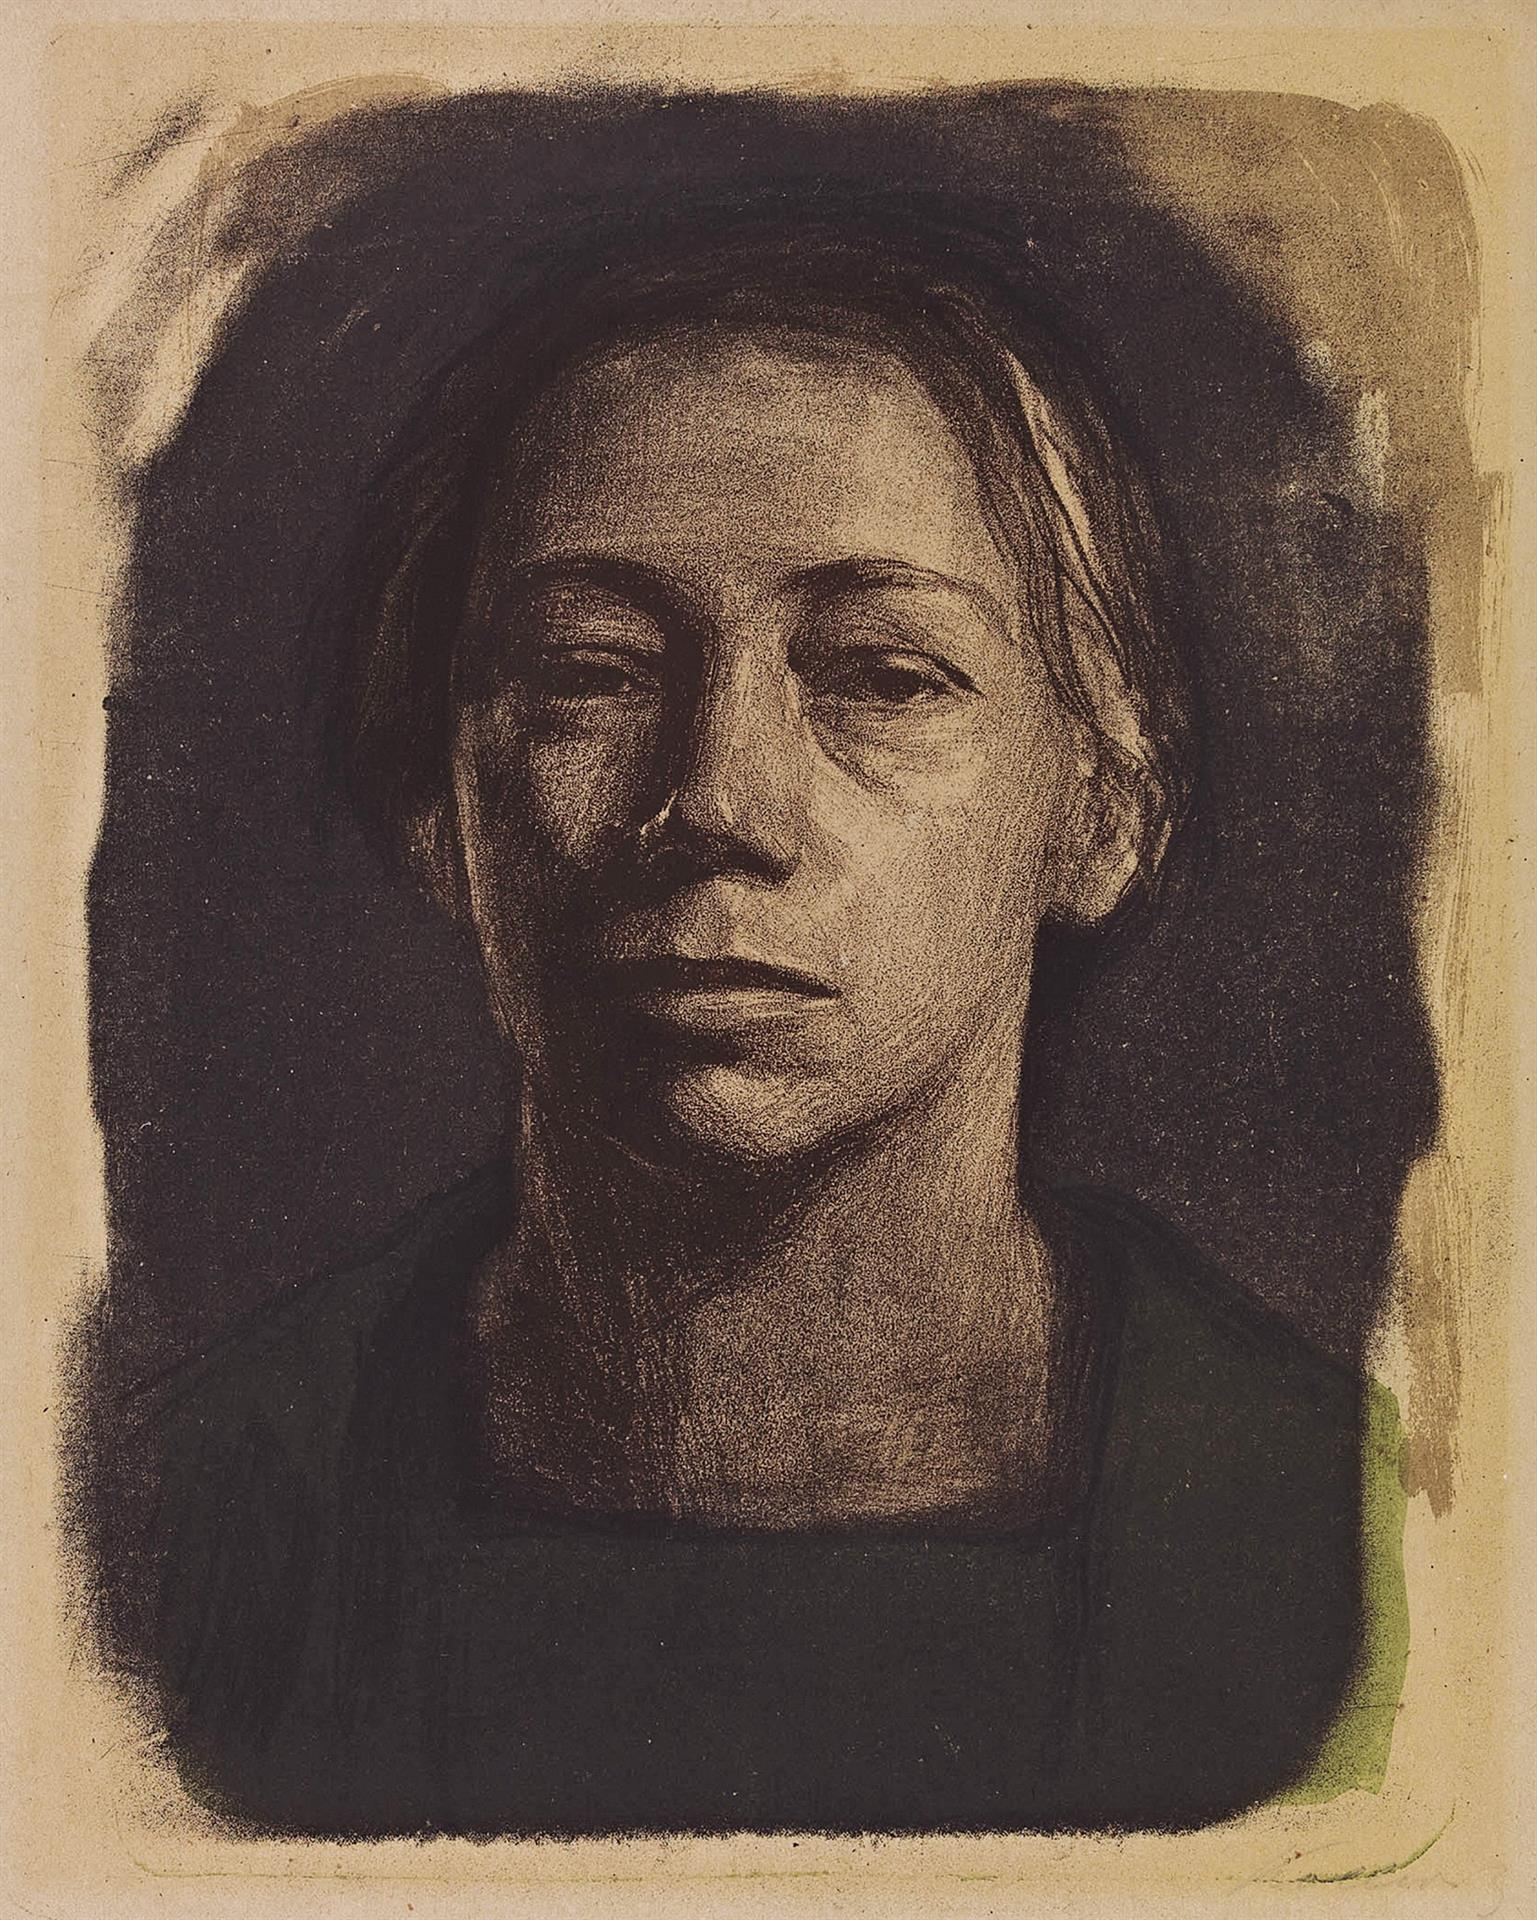 Käthe Kollwitz, Self-Portrait »en face«, 1904, crayon and brush lithograph with spray technique in four colors, Kn 85 II A, Cologne Kollwitz Collection © Käthe Kollwitz Museum Köln